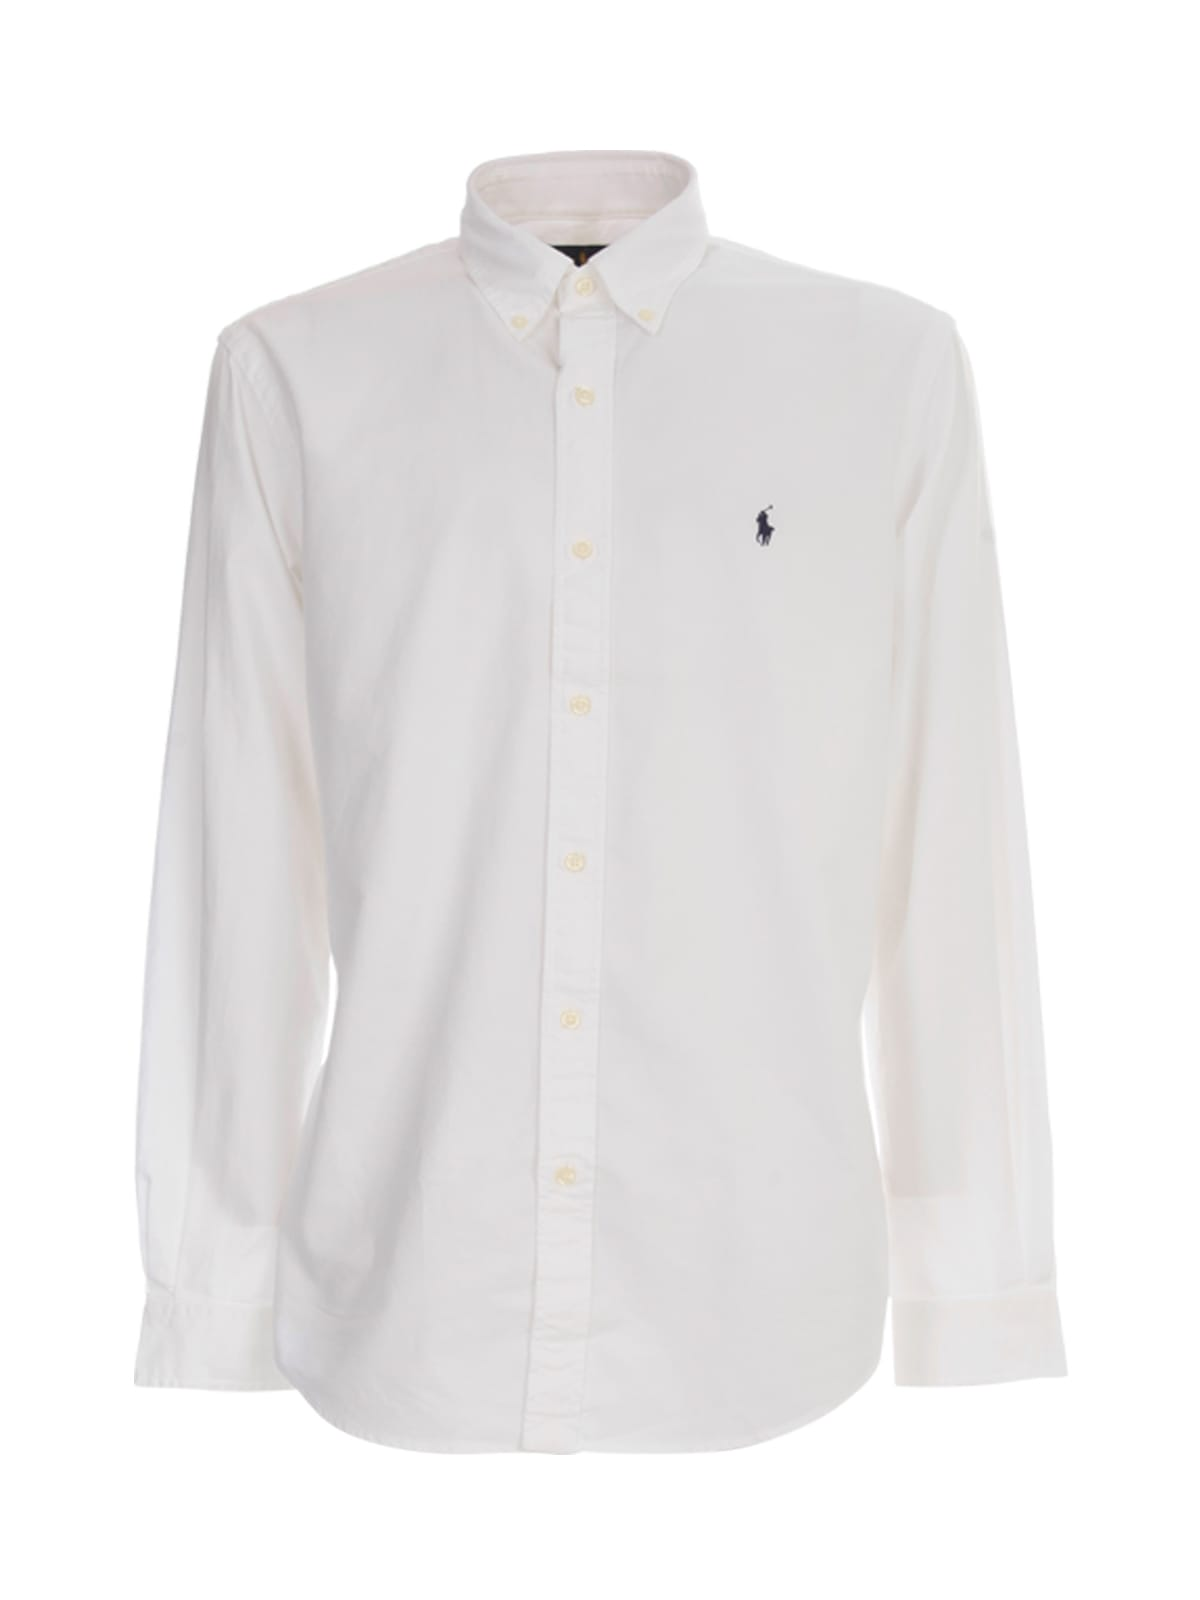 Polo Ralph Lauren Washed Oxford Shirt